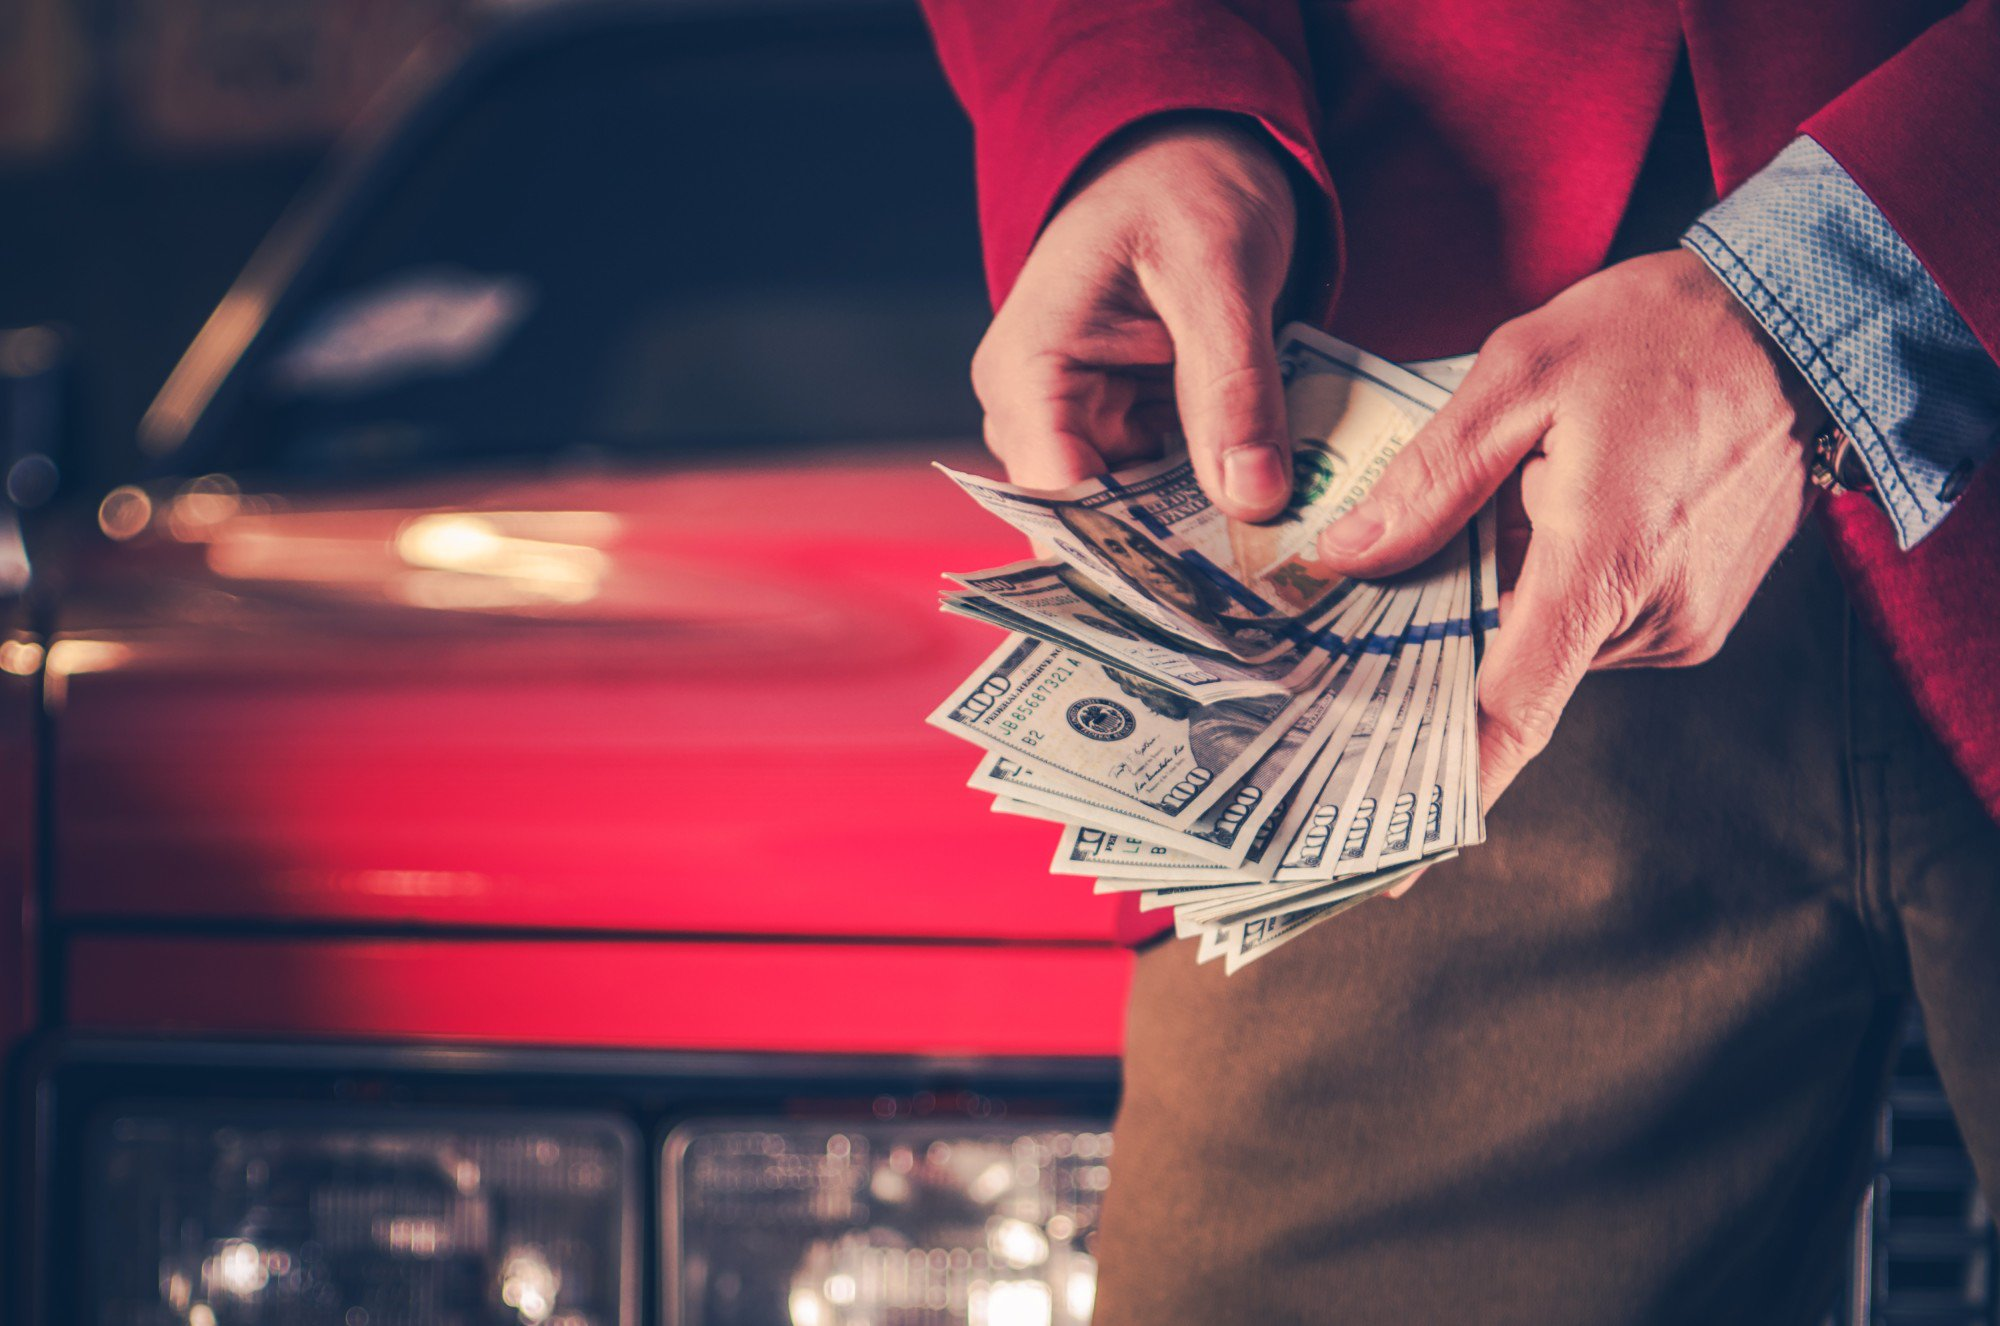 Sell My Car for Cash Near Me: 7 Tips to Find a Reputable Buyer